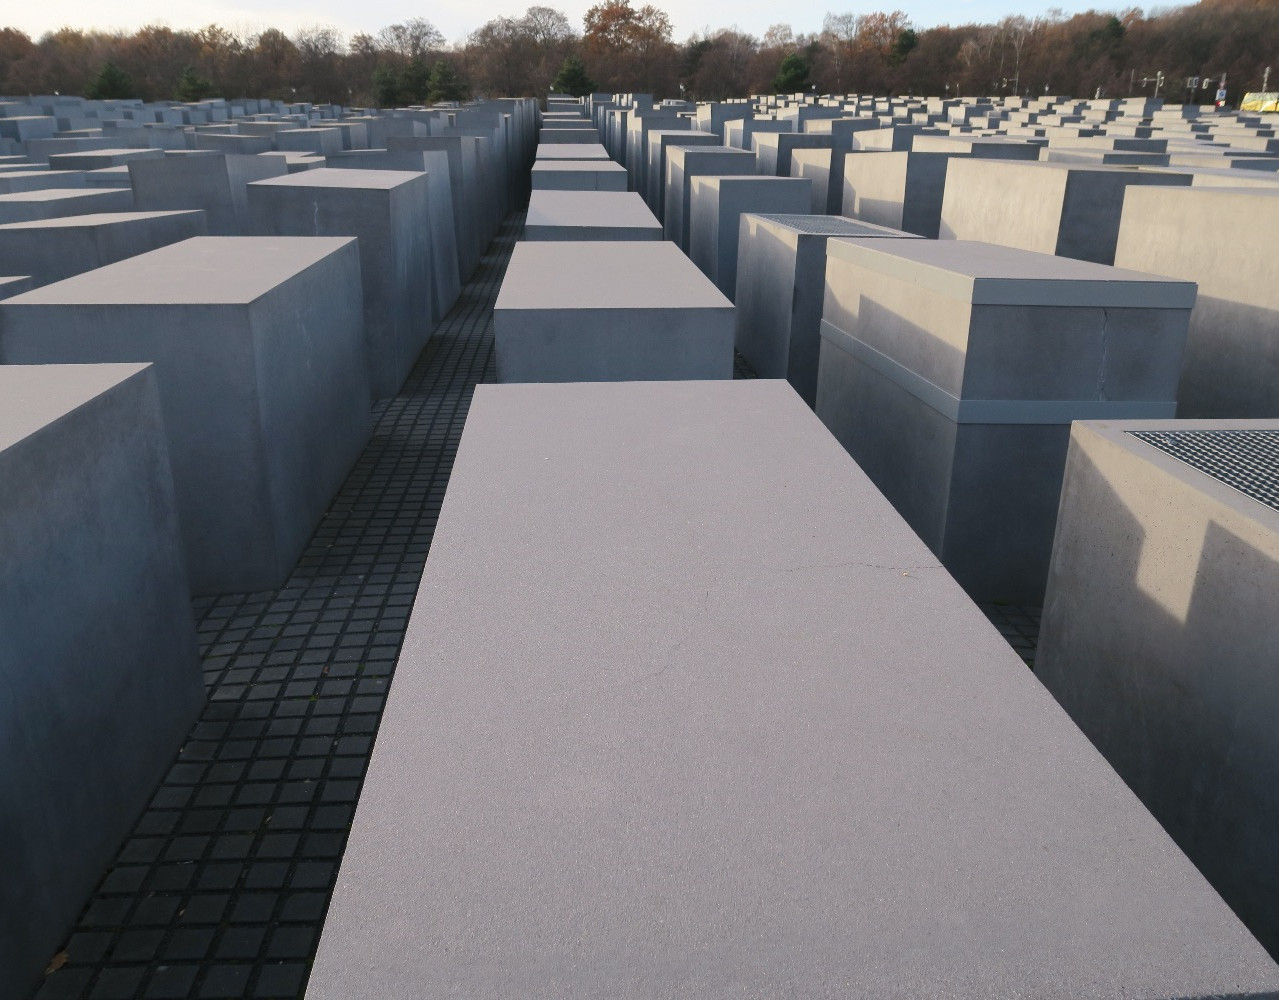 The Memorial to the Murdered Jews